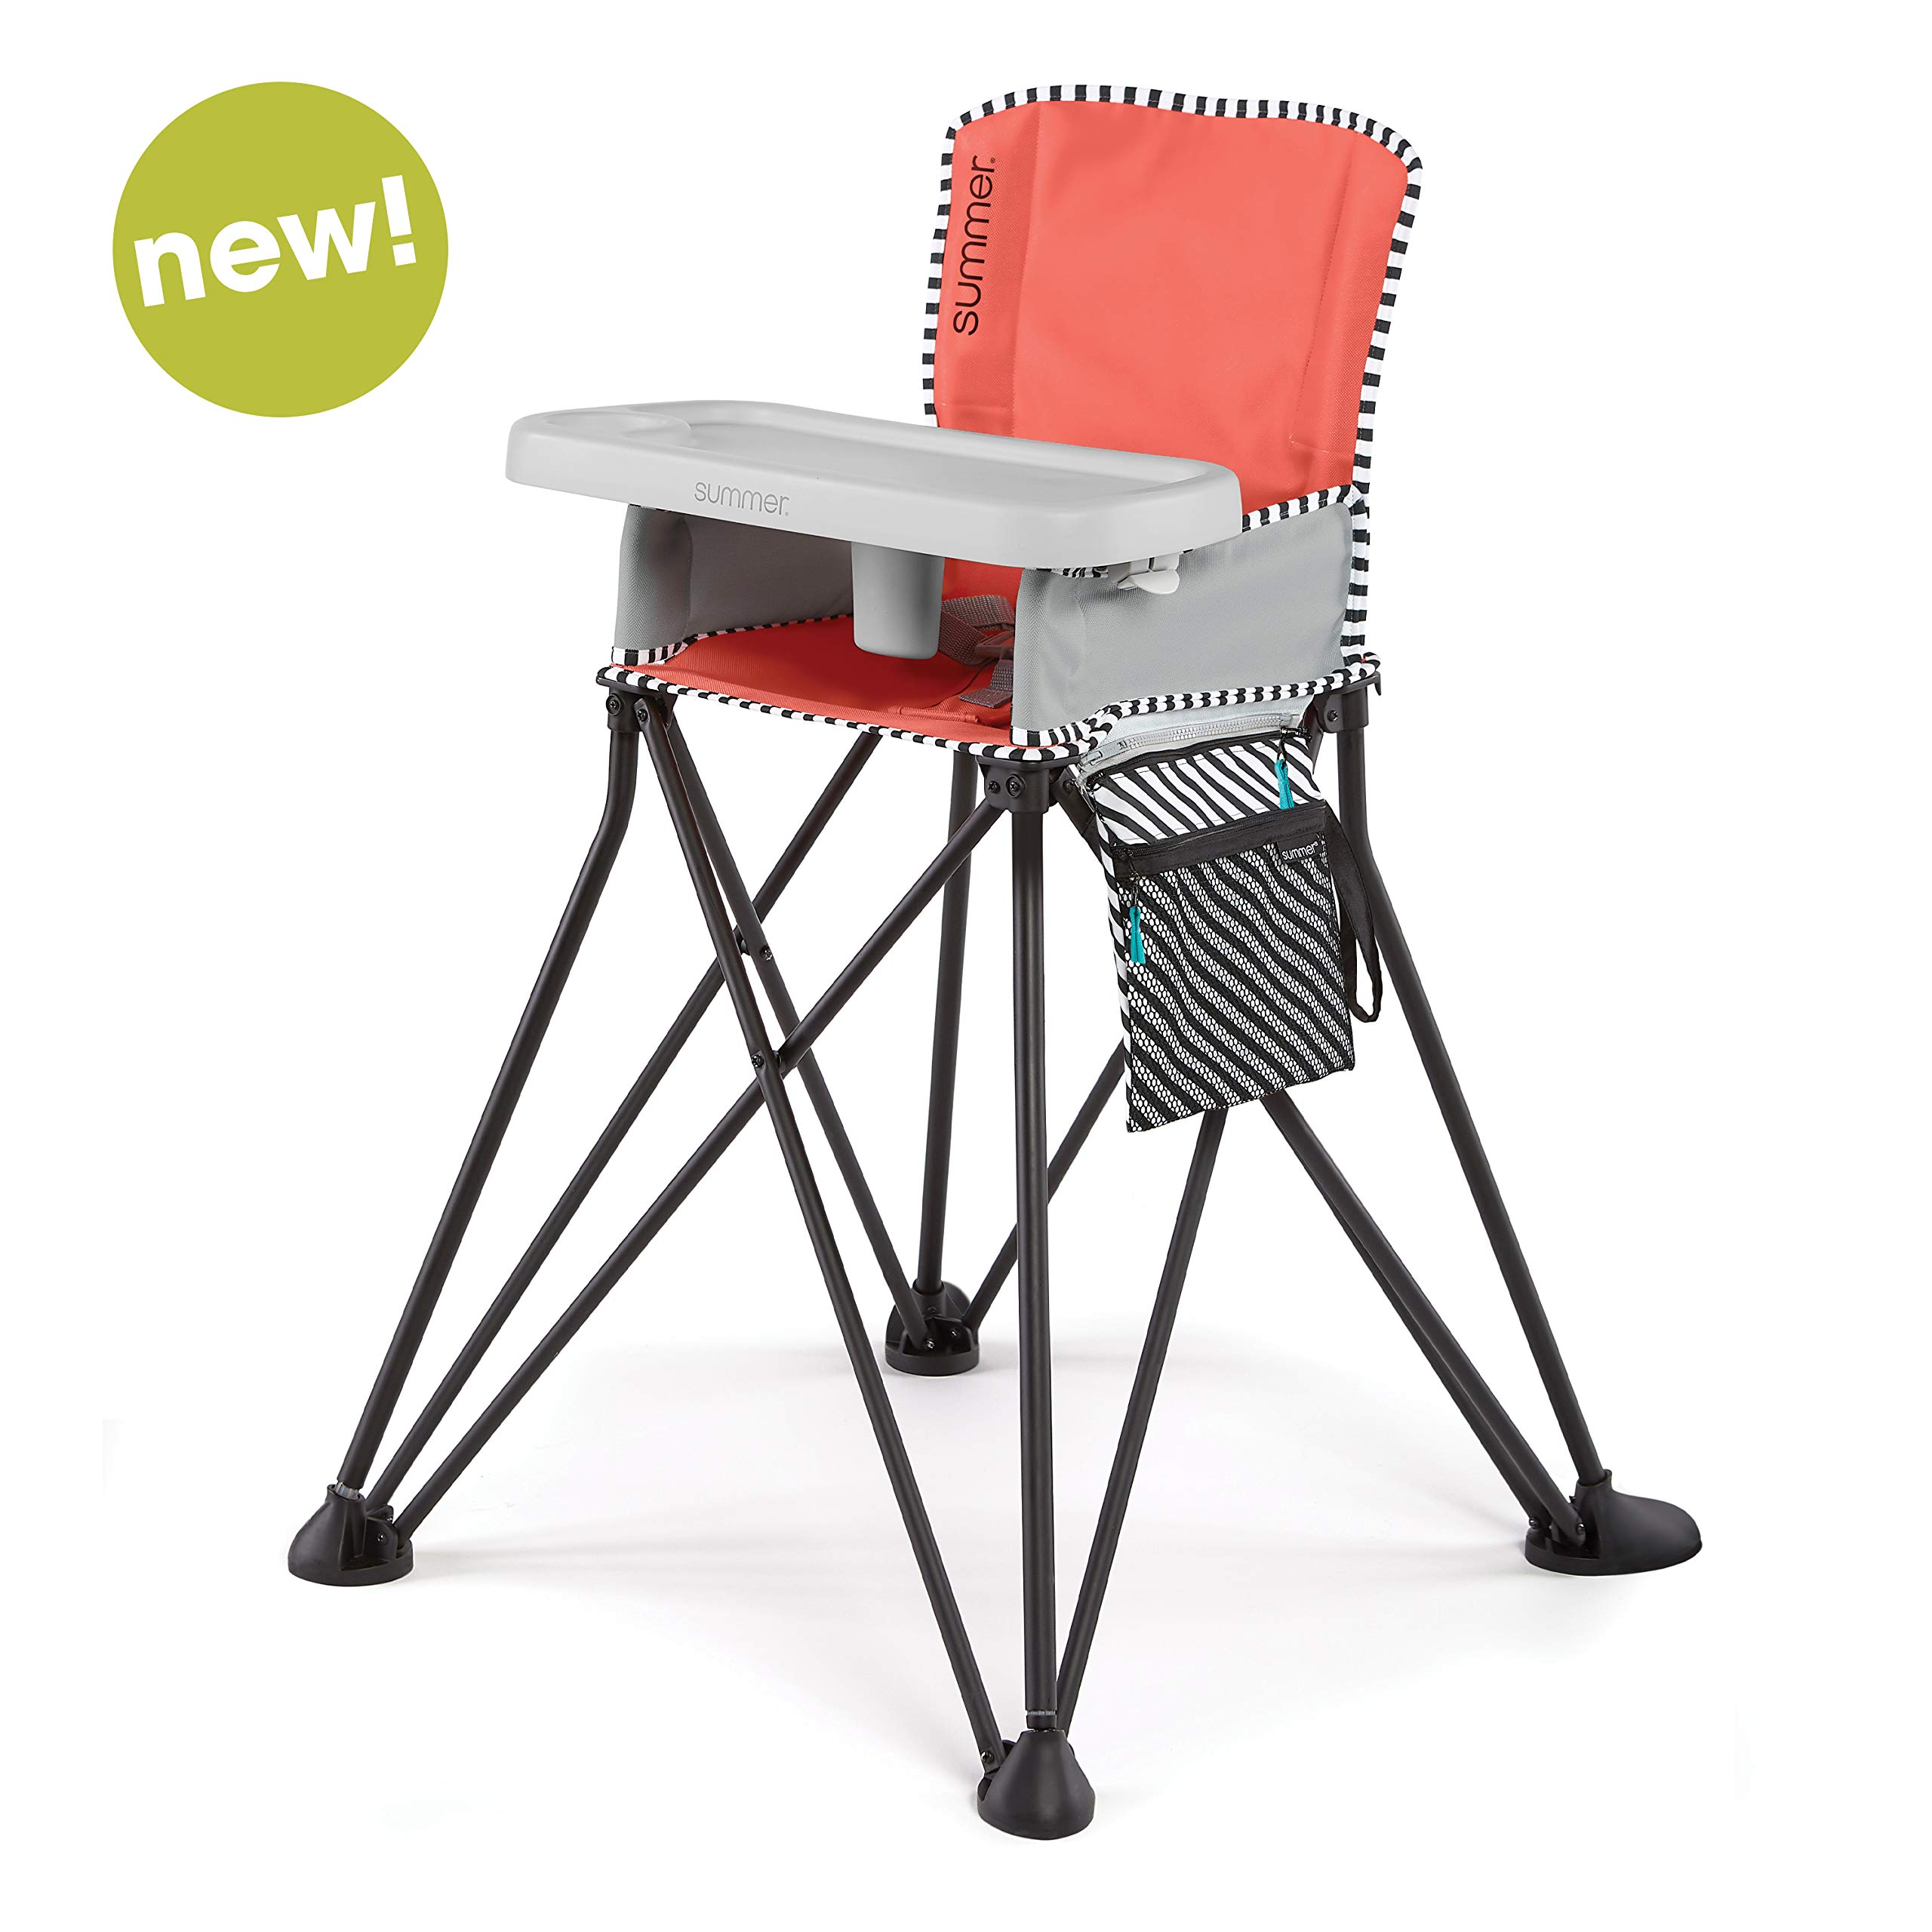 Summer Pop 'n Dine SE Highchair, Sweet Life Edition, Mango Melon Color - Portable High Chair for Indoor/Outdoor Dining - Space Saver High Chair with Fast, Easy, Compact Fold, for 6 Months - 45 Pounds